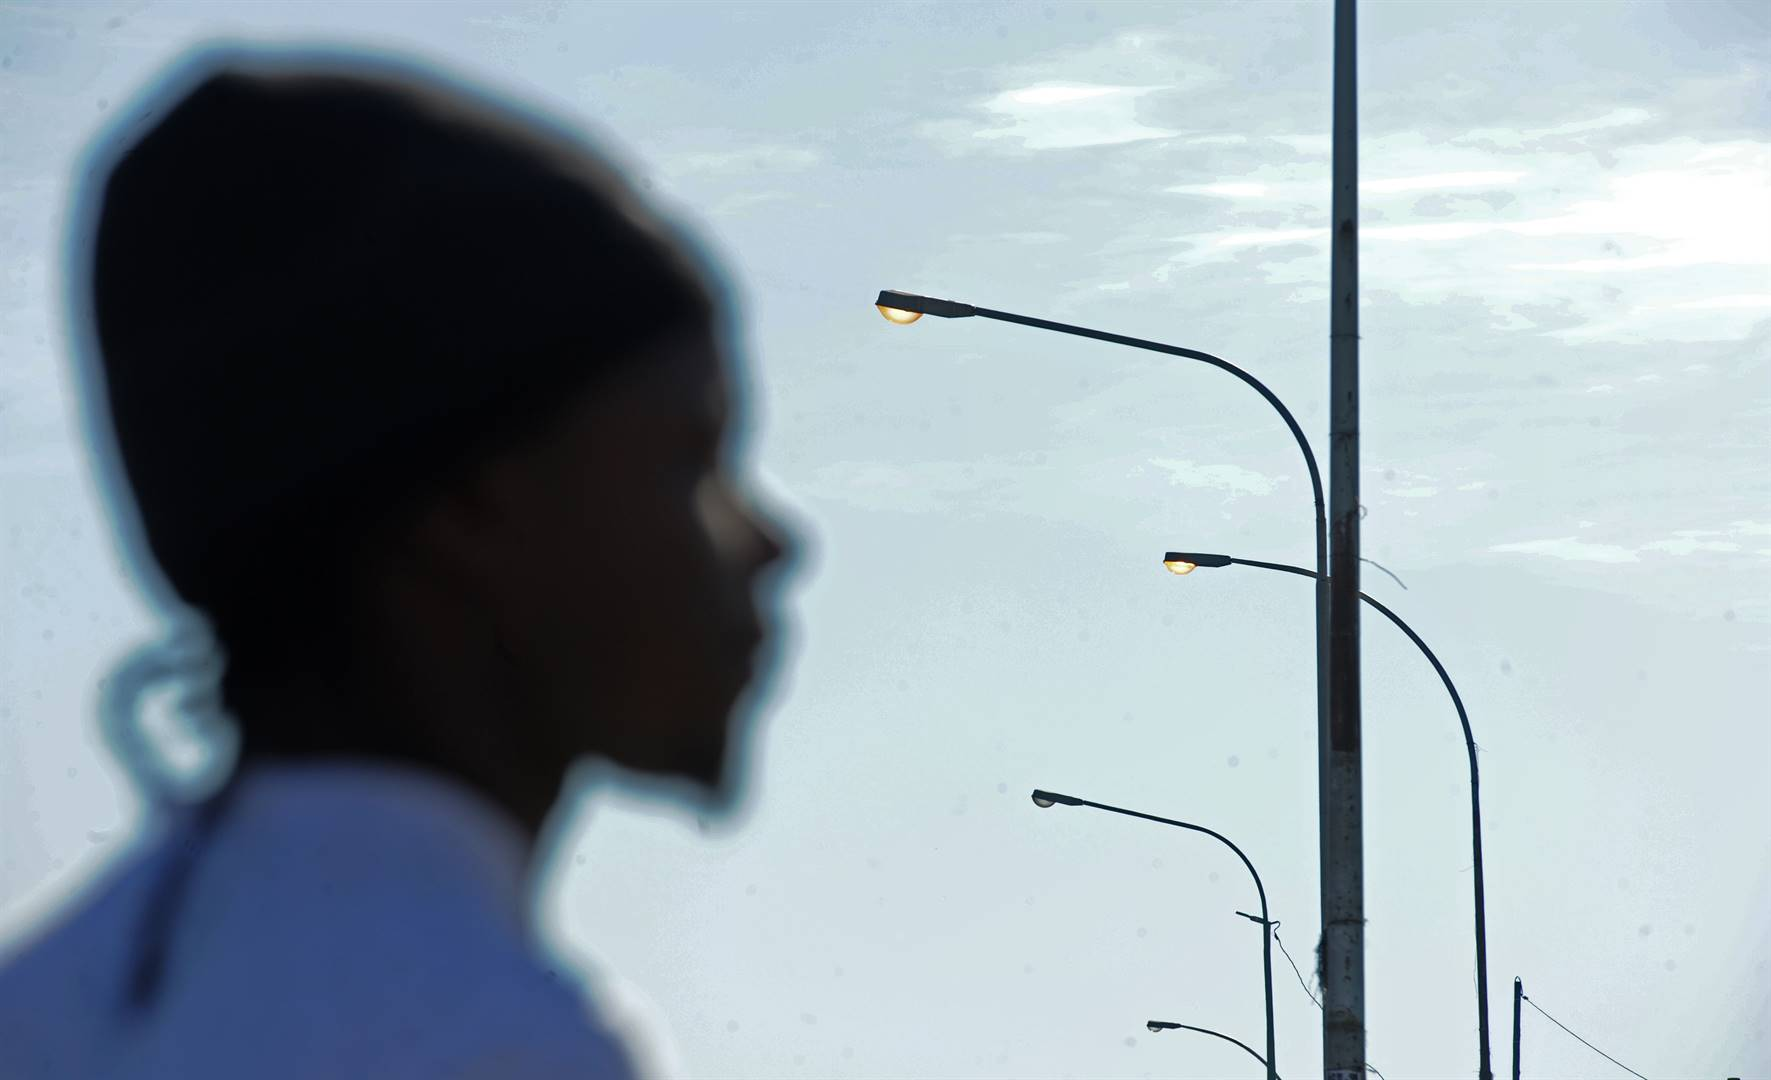 Msunduzi says it did not have money needed to carry out the repairs on streets lights .PHOTO: IAN CARBUTT